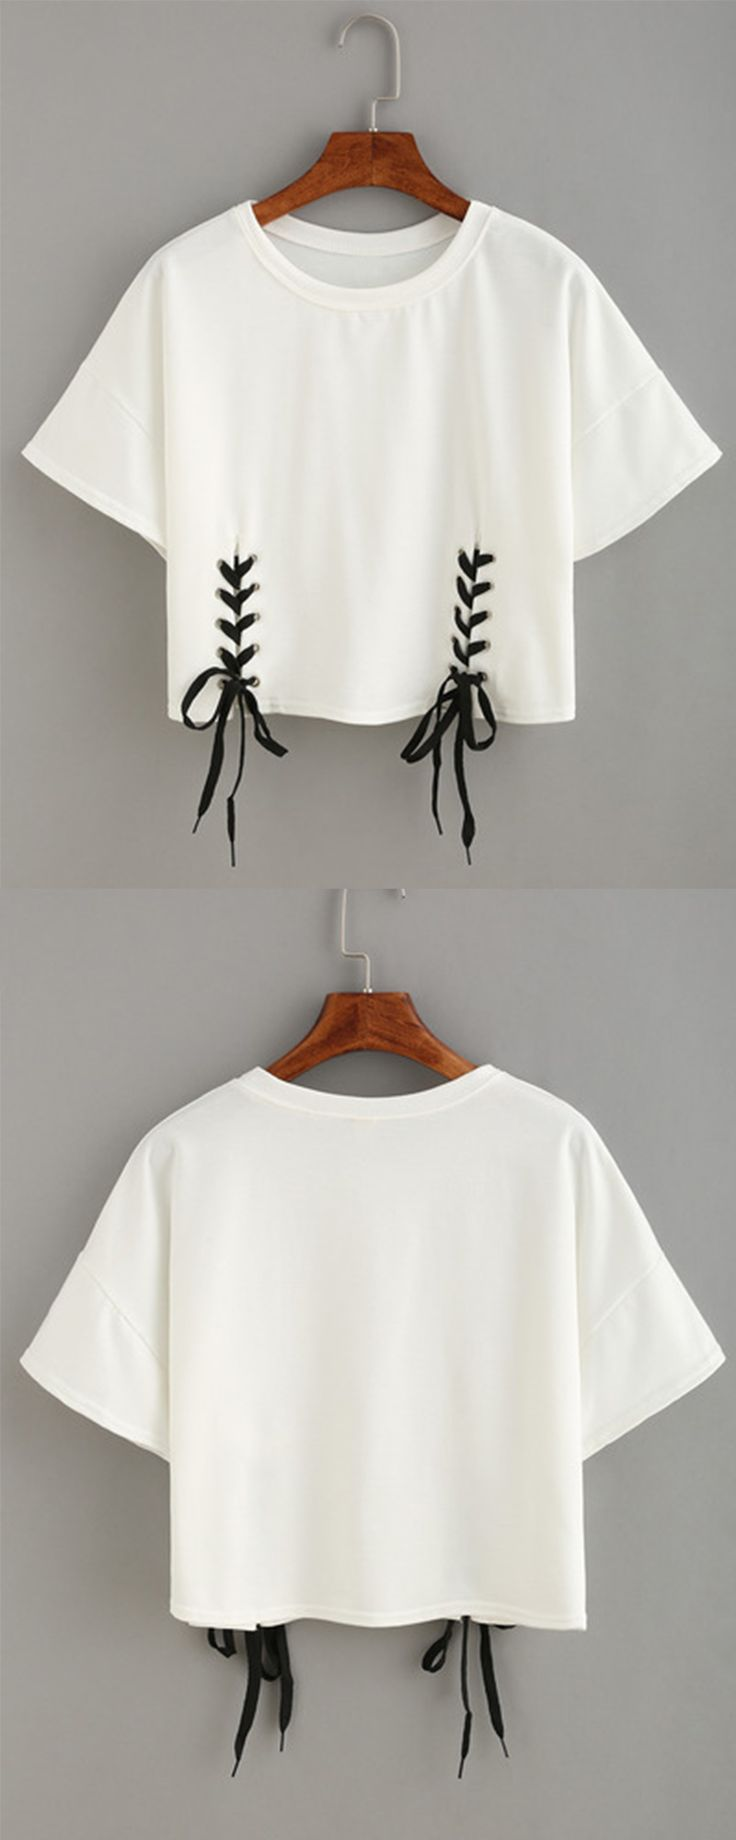 DIY Double Lace-Up Hem Crop T-shirt  //Pinned on @benitathediva, DIY Fashion LifeSTYLE Blog